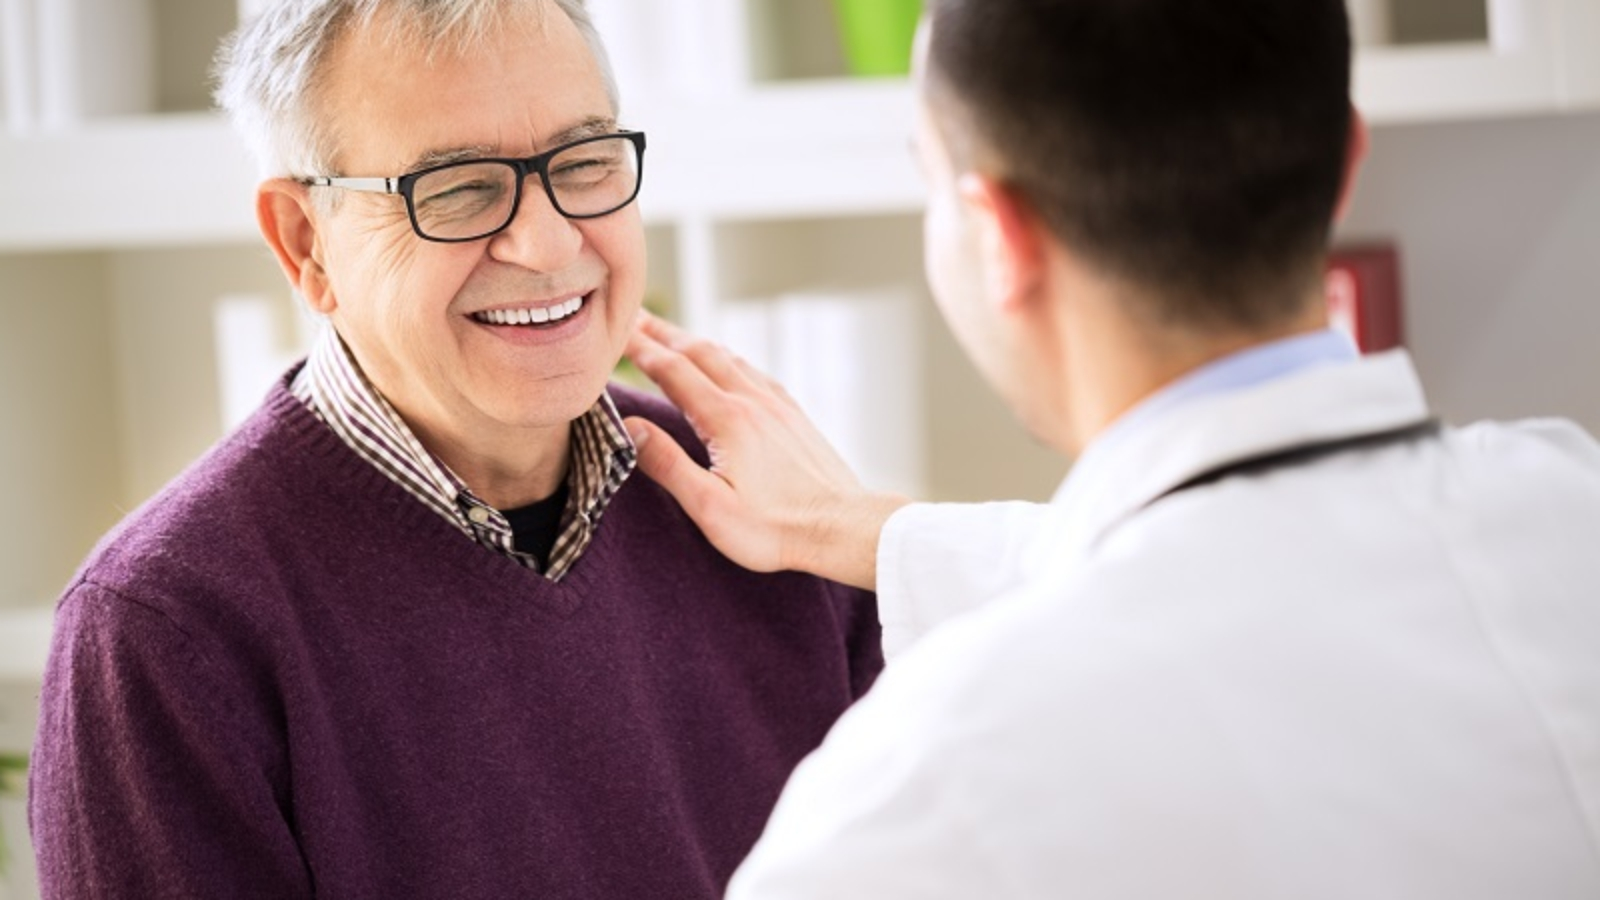 The 3 things your patients want now